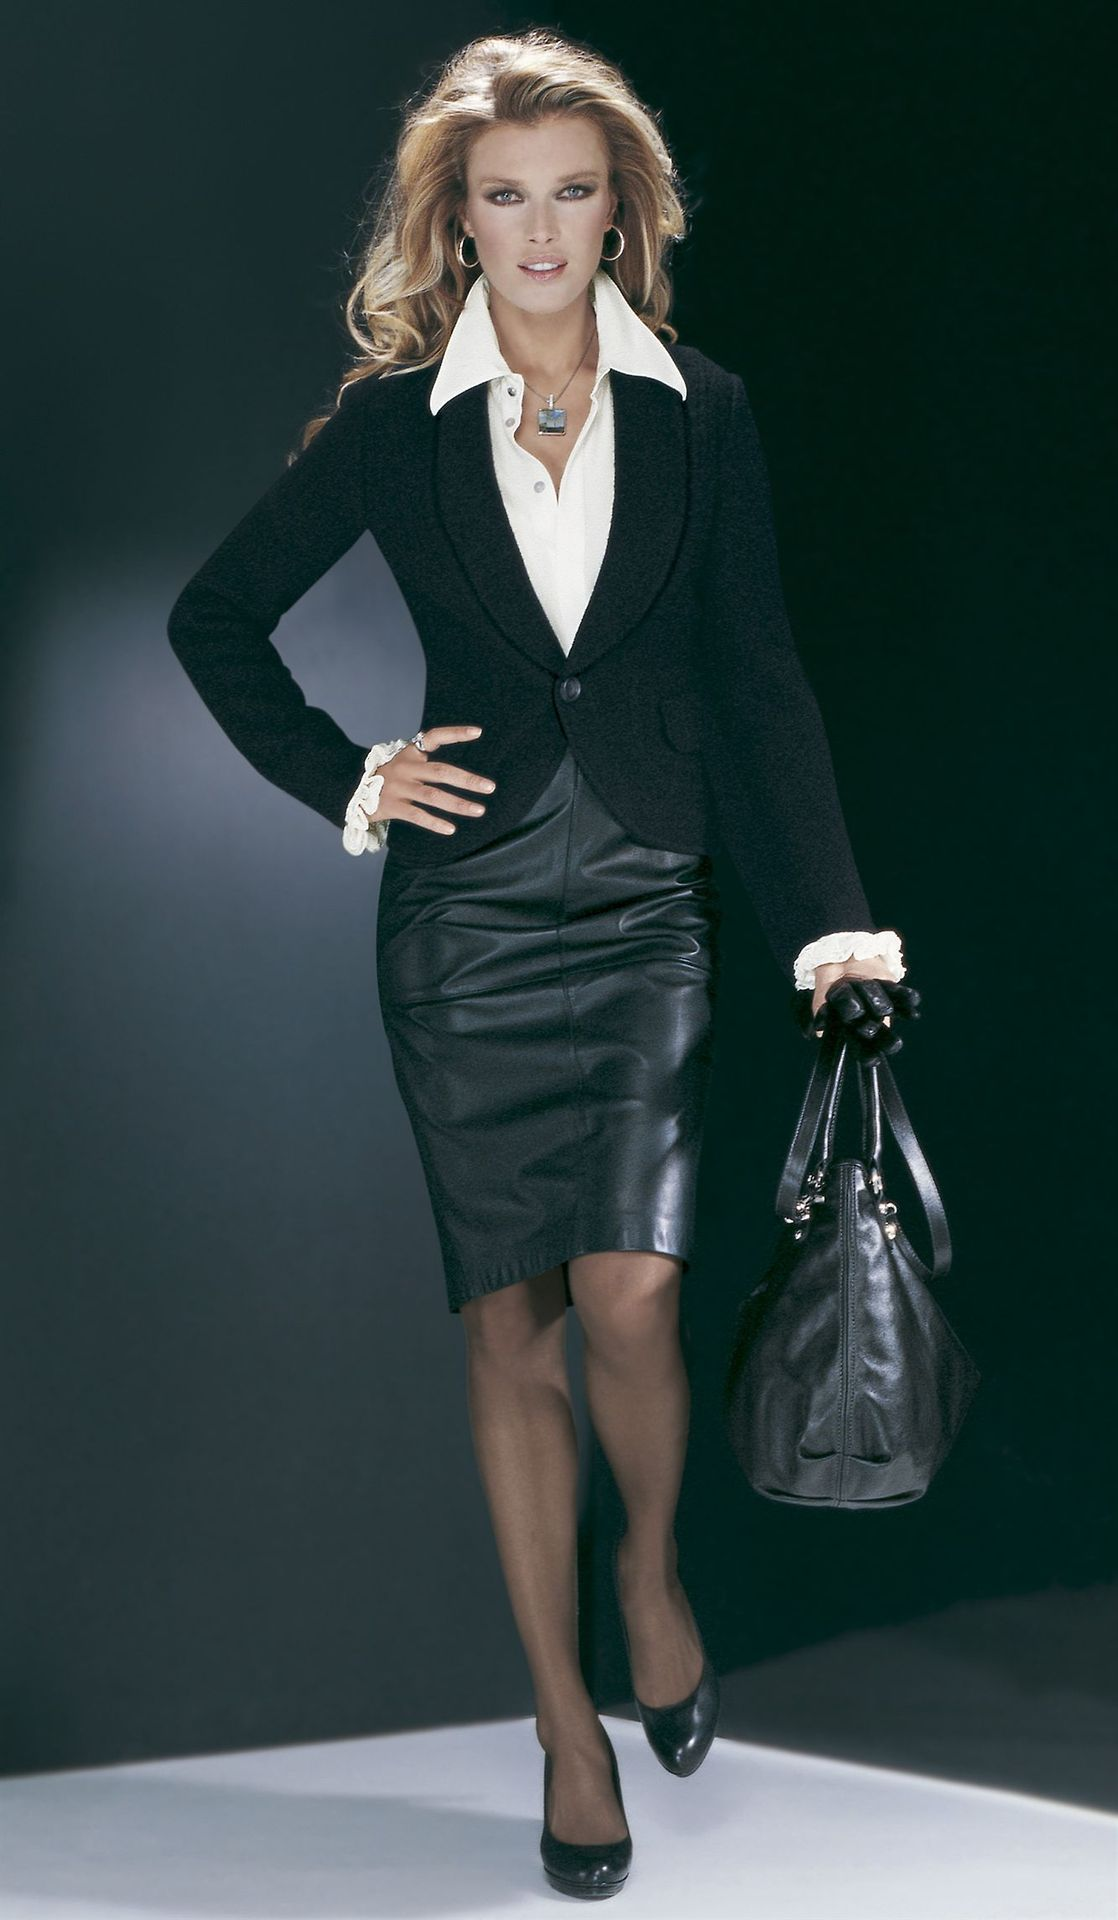 Black Leather Pencil Skirt Black Blazer White Blouse Sheer Black ...